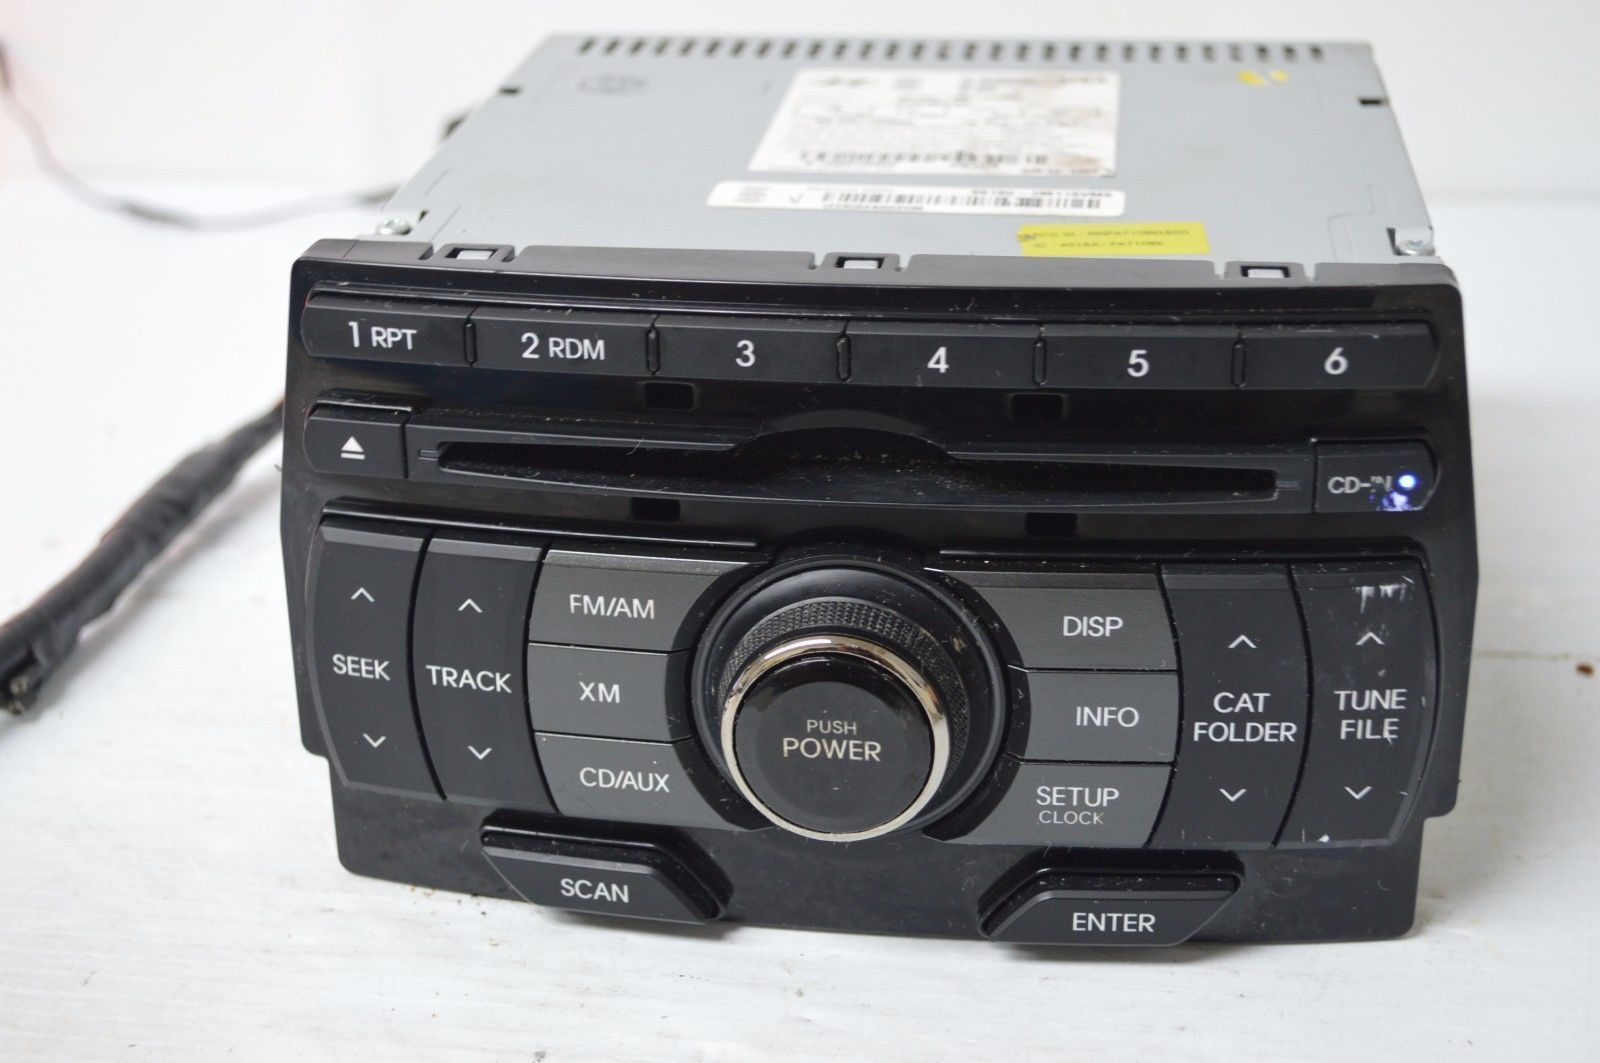 2011 2012 Hyundai Genesis Radio Cd MP3 Player 96180-2M115VM5 TESTED C35#014